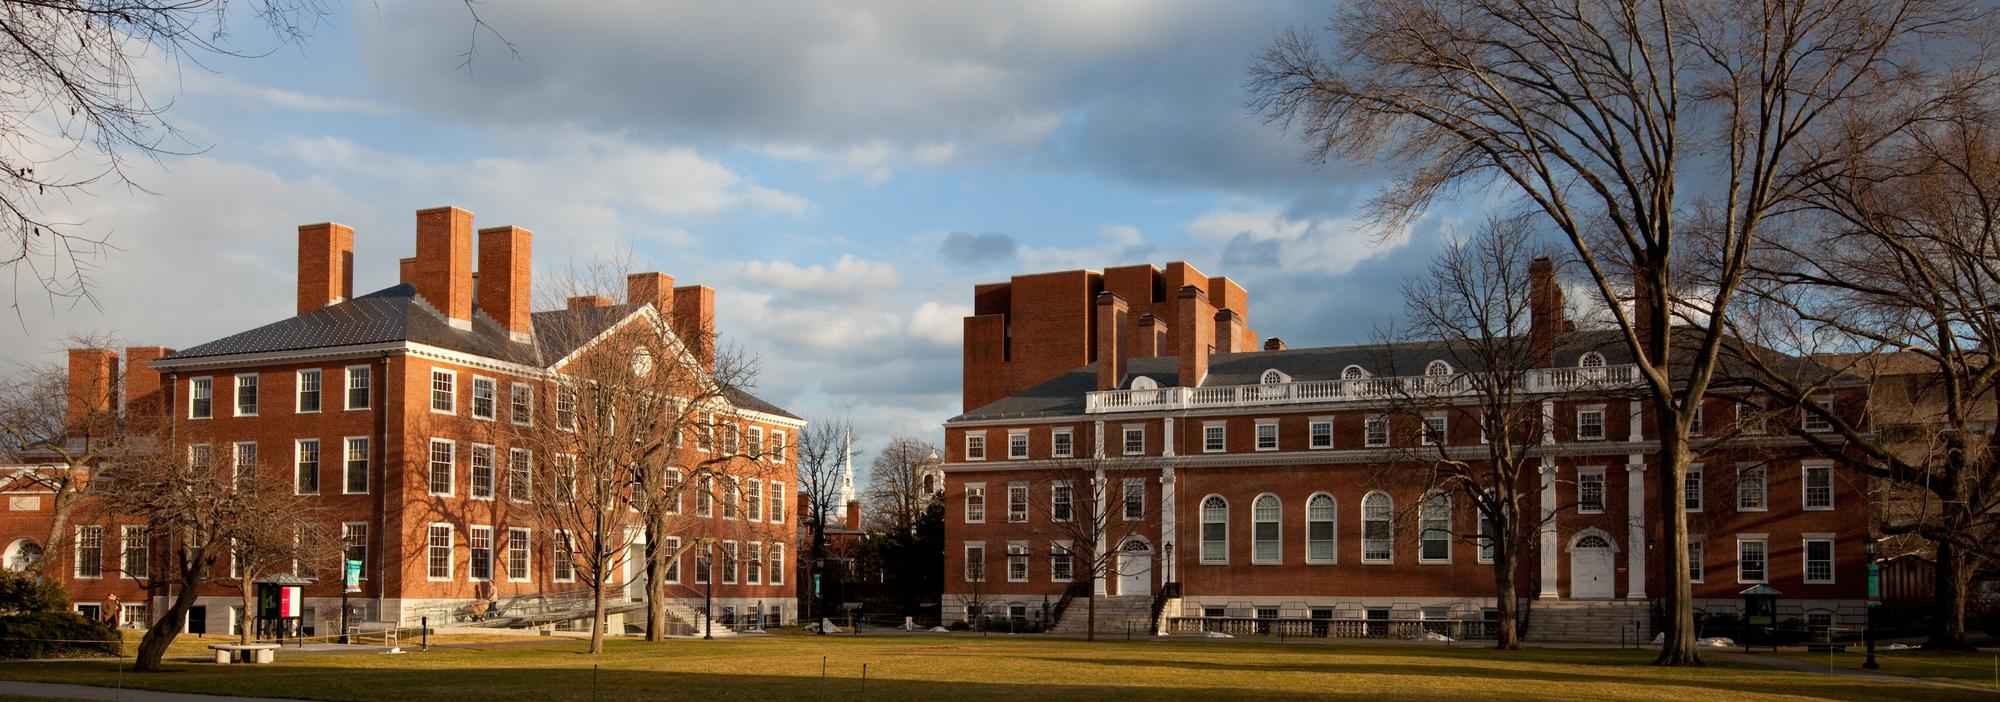 Harvard-university-boston-my-mixtourist